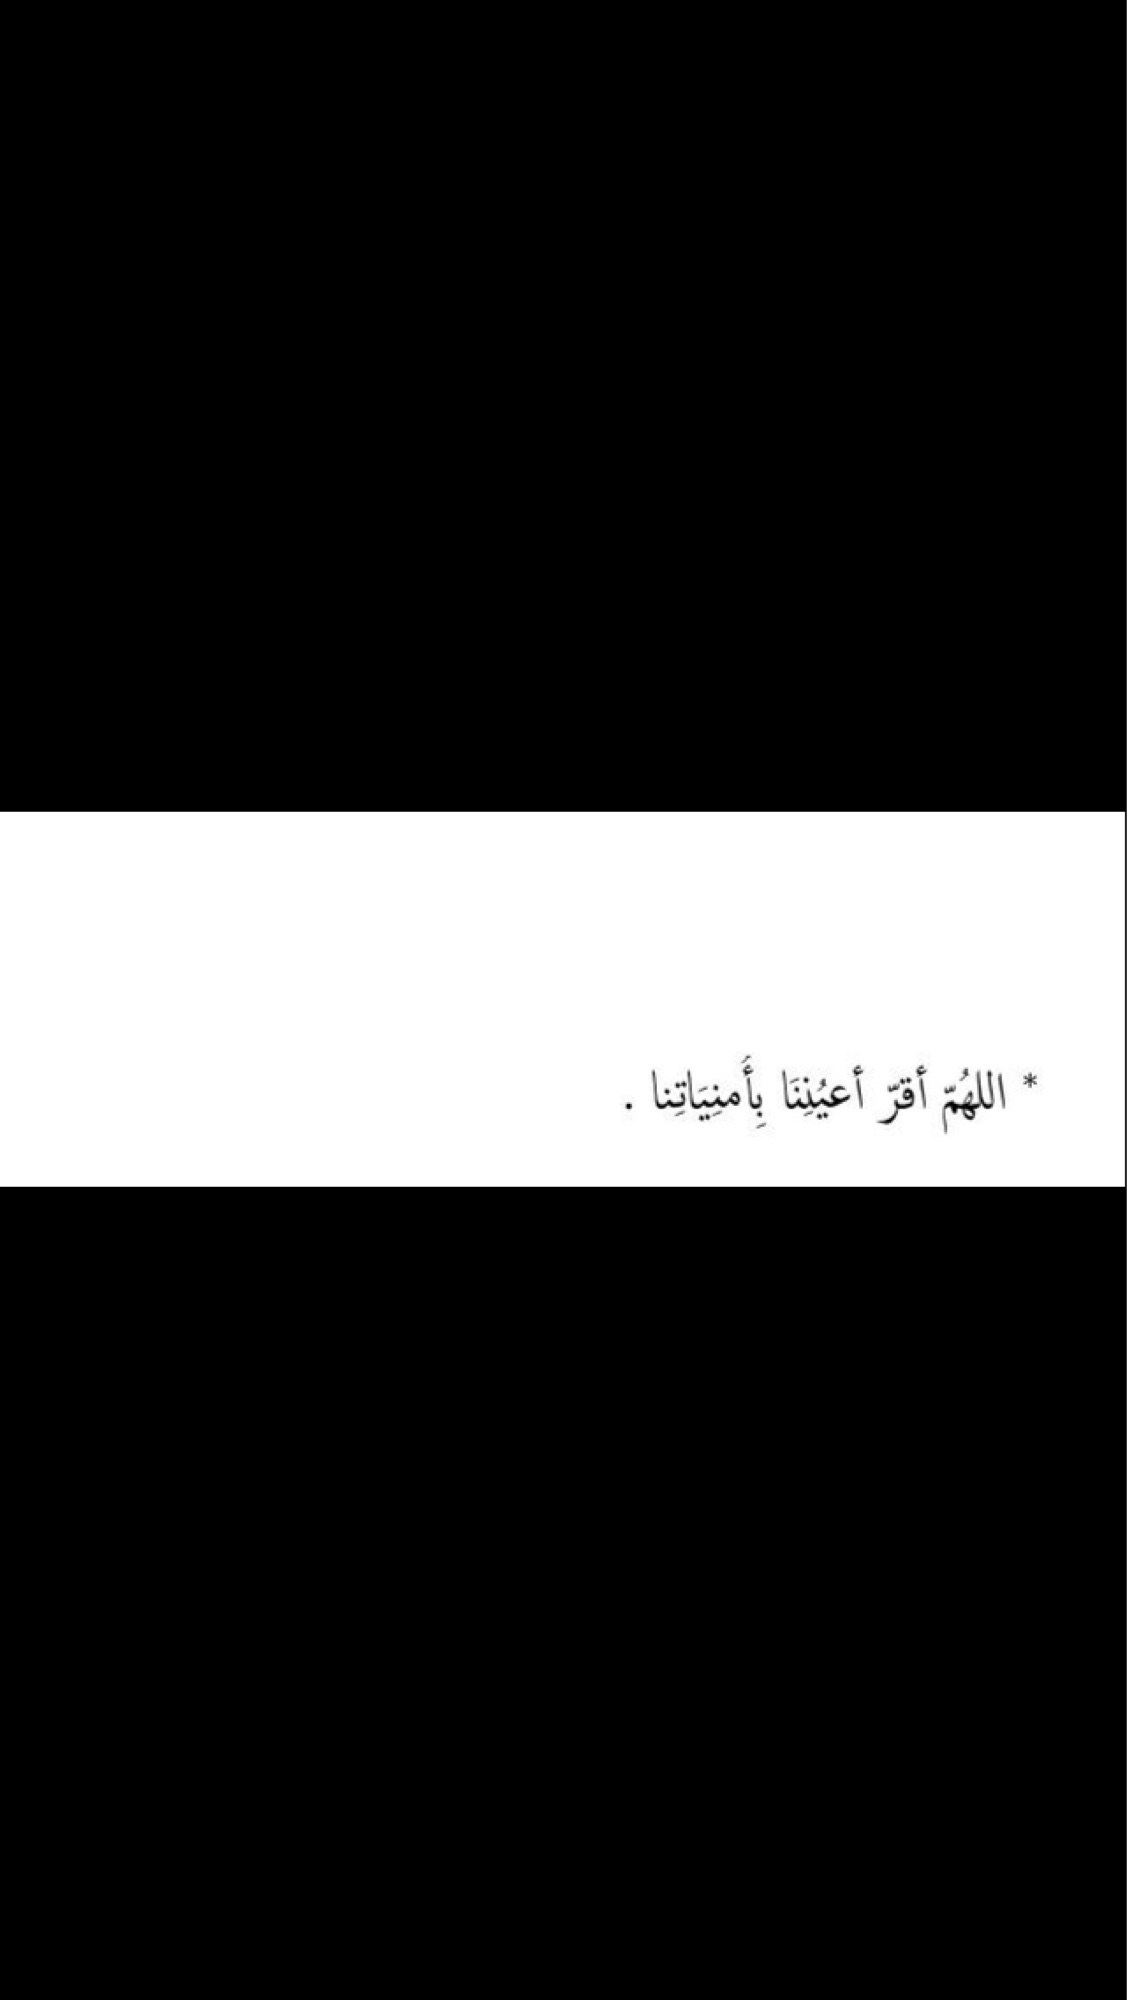 amal_0098's Cover Photo